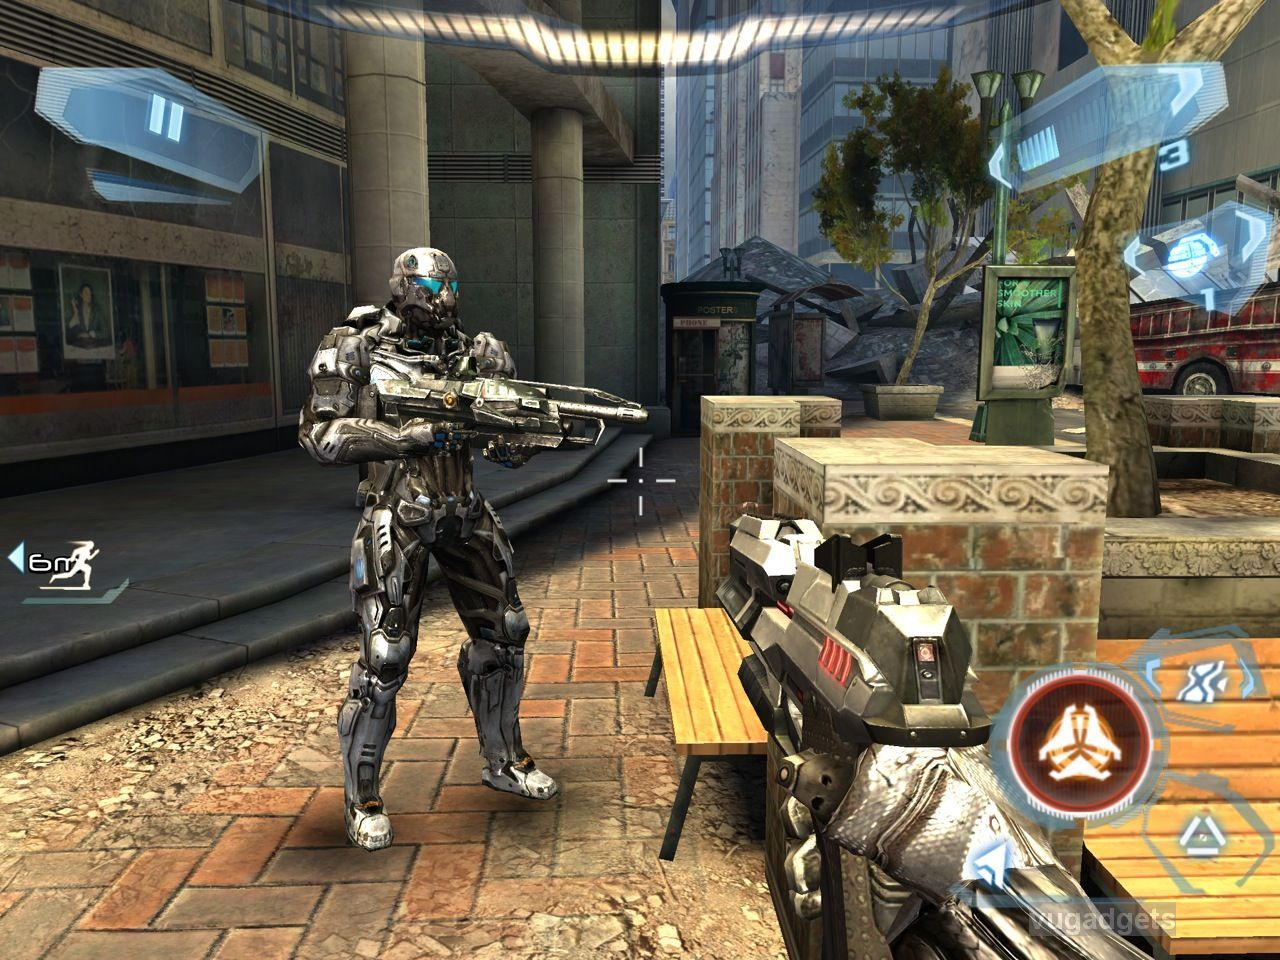 Shooting Best Android Game Best android games, Best